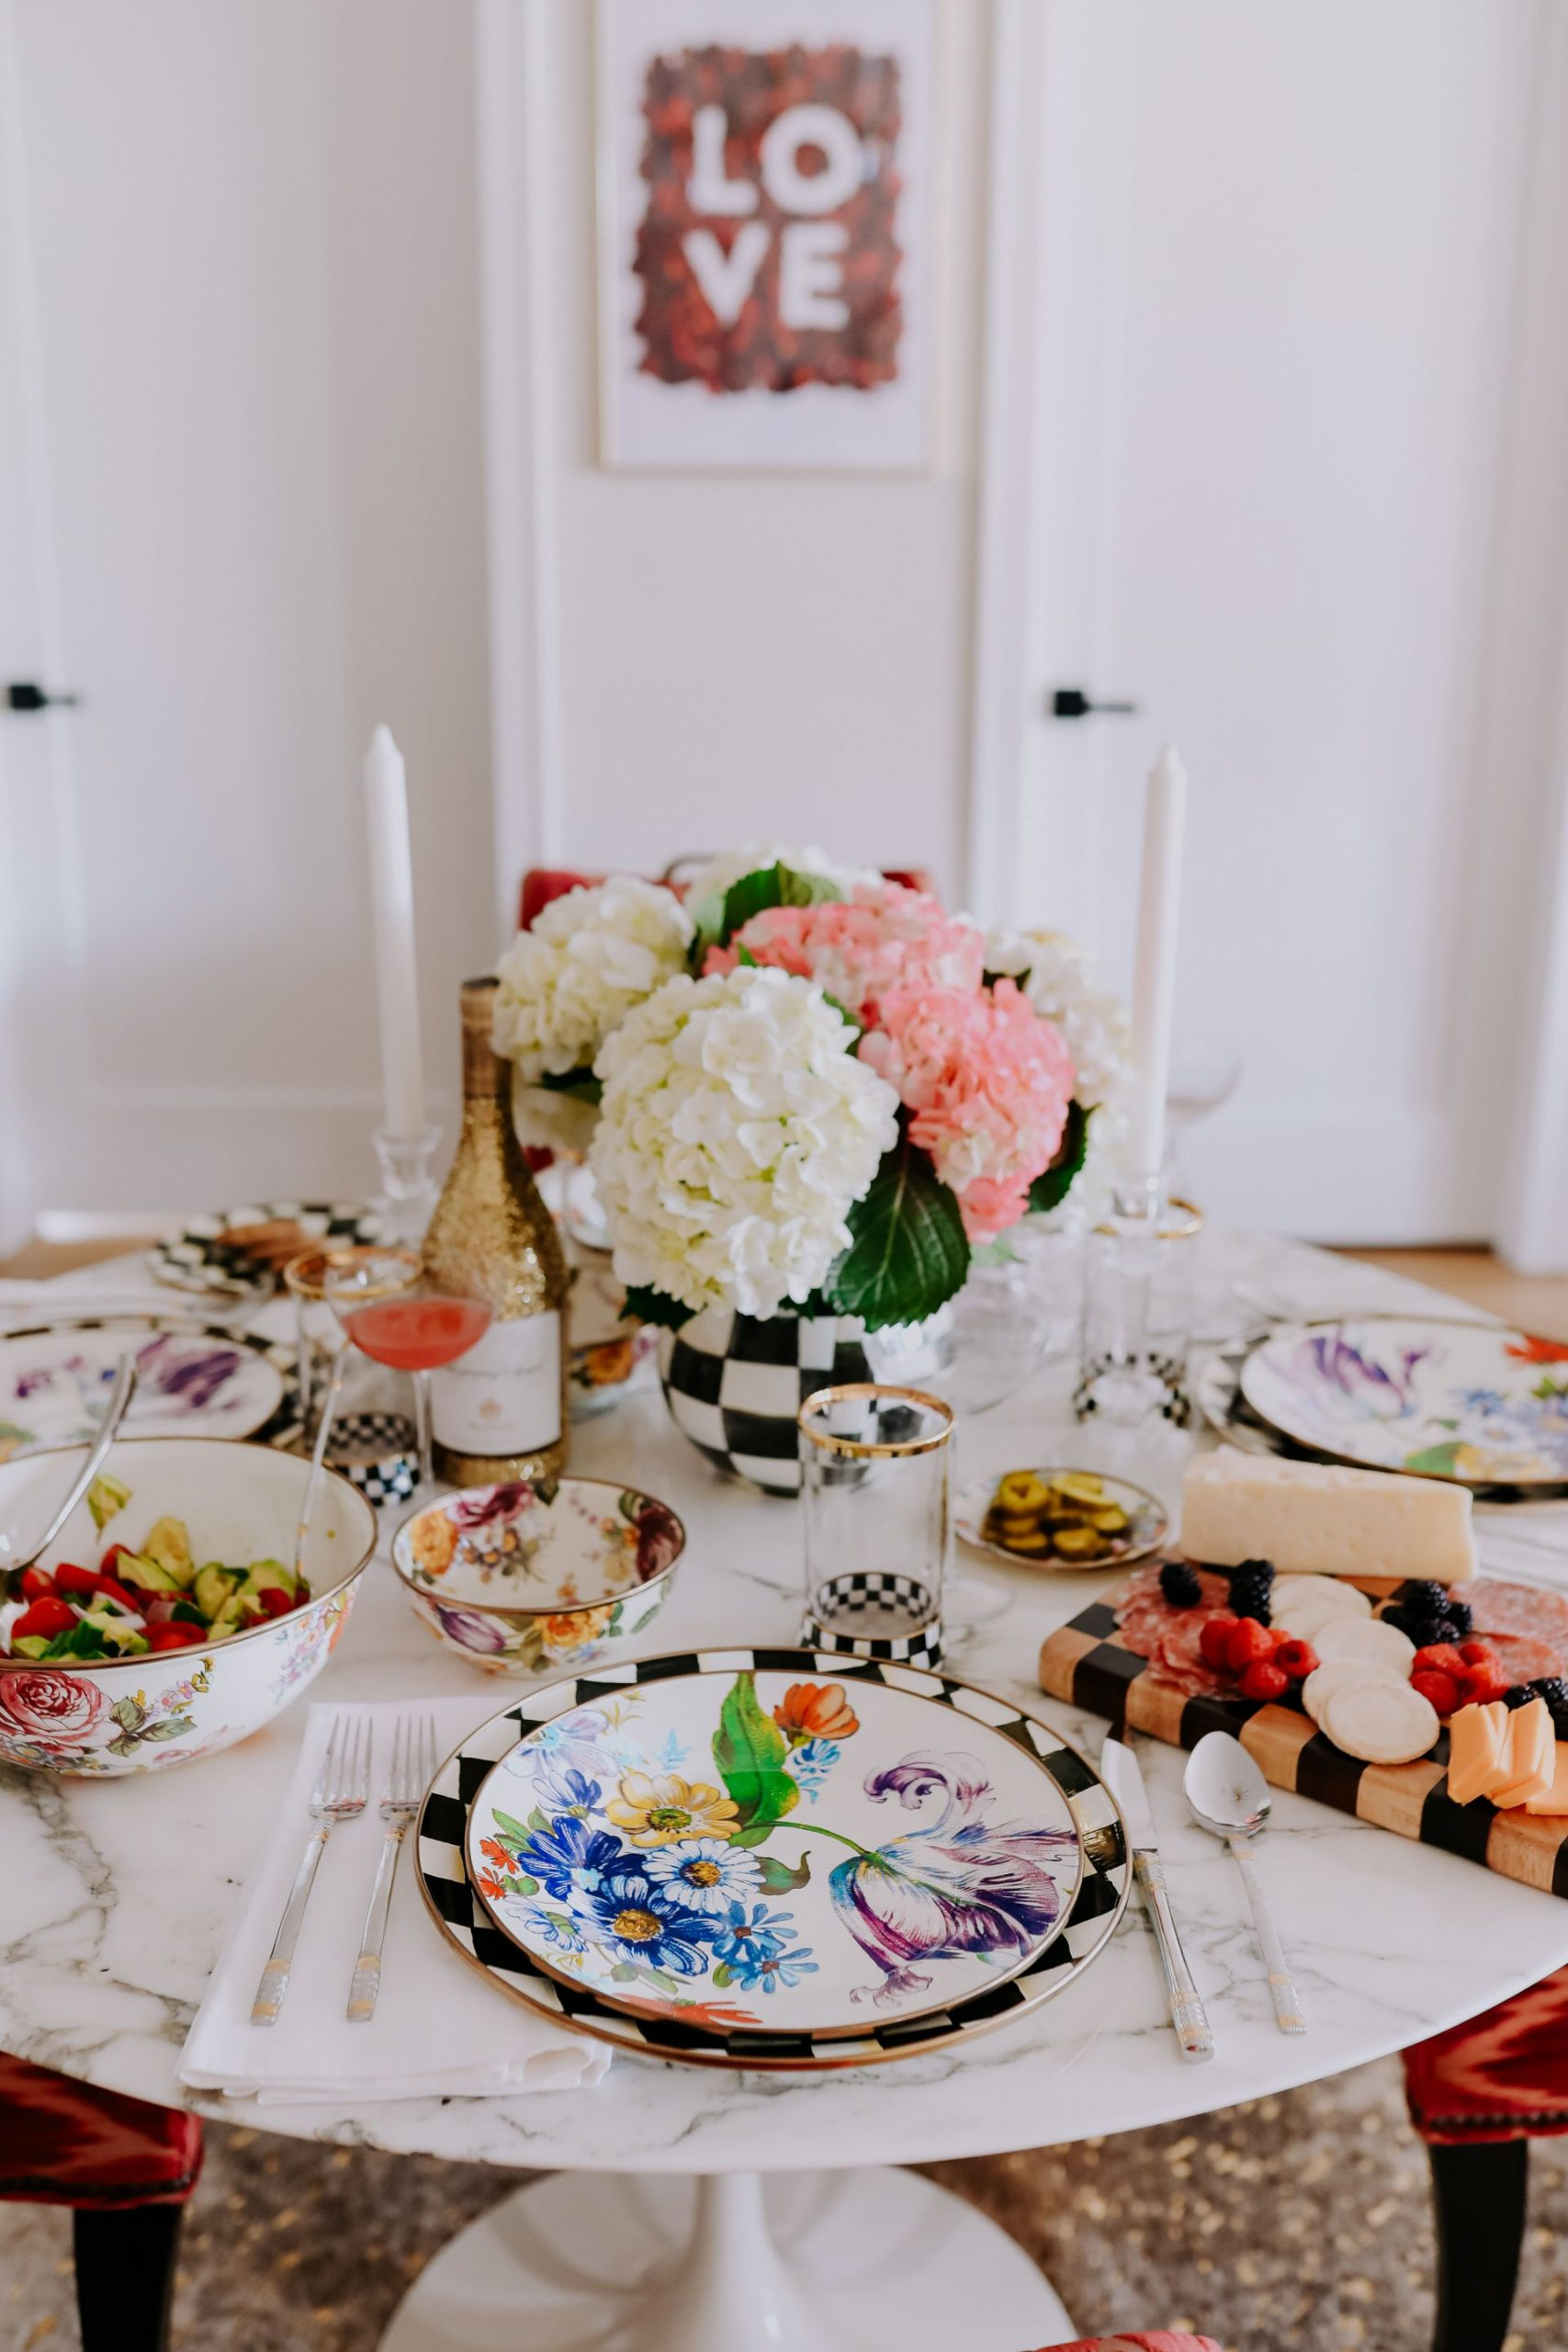 How to set a table MacKenzie Childs, Courtly Check MacKenzie Childs, how to decorate with Mackenzie-Childs, Jennifer Worman Chicago Lifestyle blogger, Mackenzie-childs, Beautiful Handcrafted Ceramics, Dinnerware, Home Decor, black and white dinnerware, black and white check, courtly check, Mackenzie-childs courtly check, kitchen inspiration, dining inspiration, home inspiration, glam home inspiration, classic home inspiration, classic tablecape, check table ideas, checkered table decor, Mackenzie-childs place setting, floral plates, floral tablescape